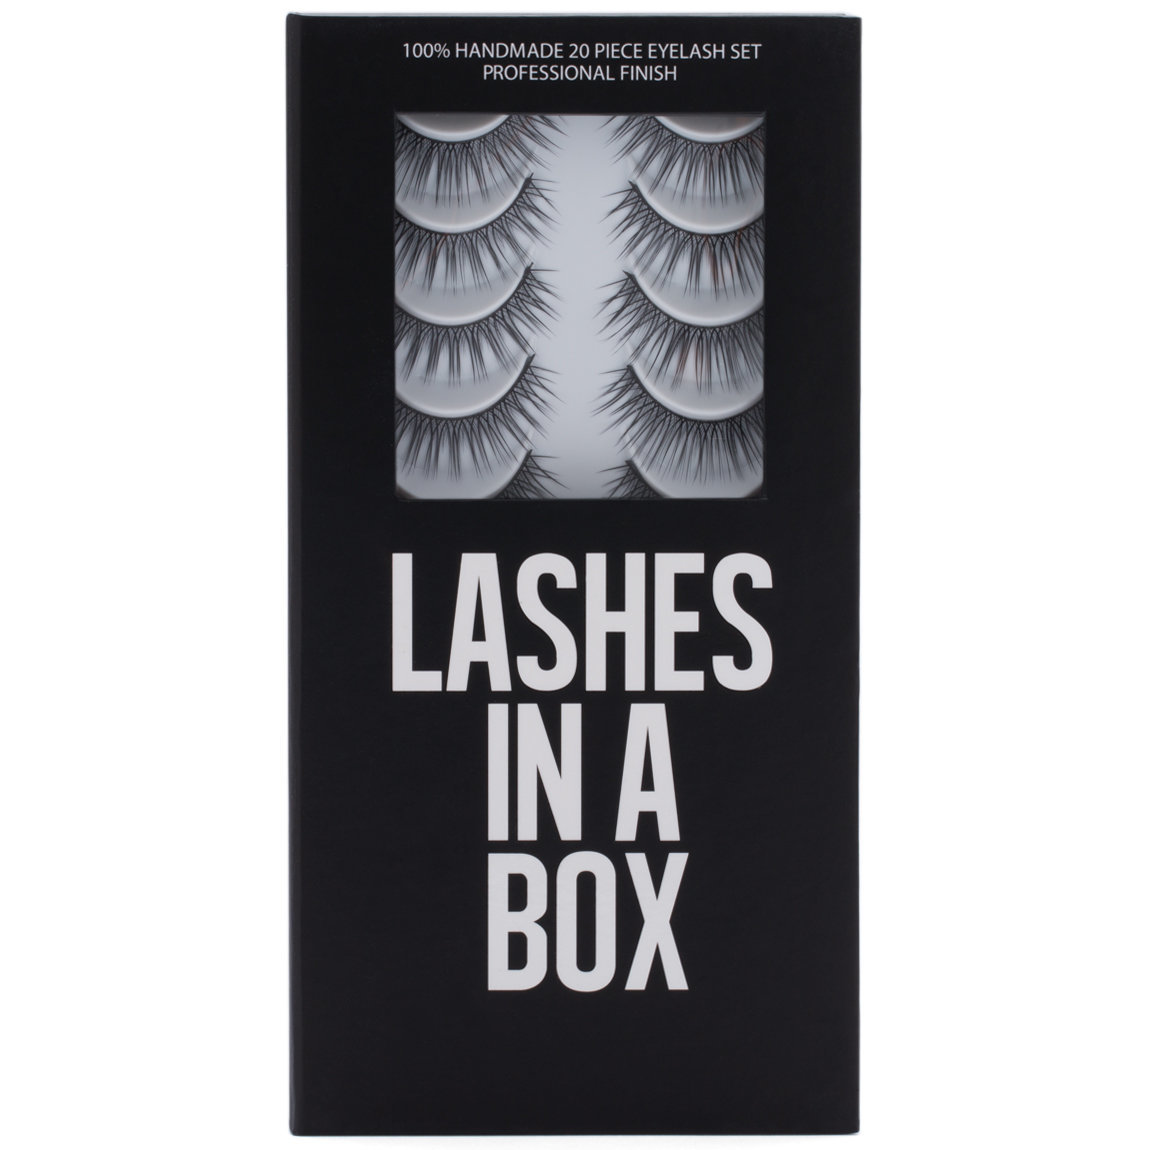 LASHES IN A BOX N°8 product swatch.